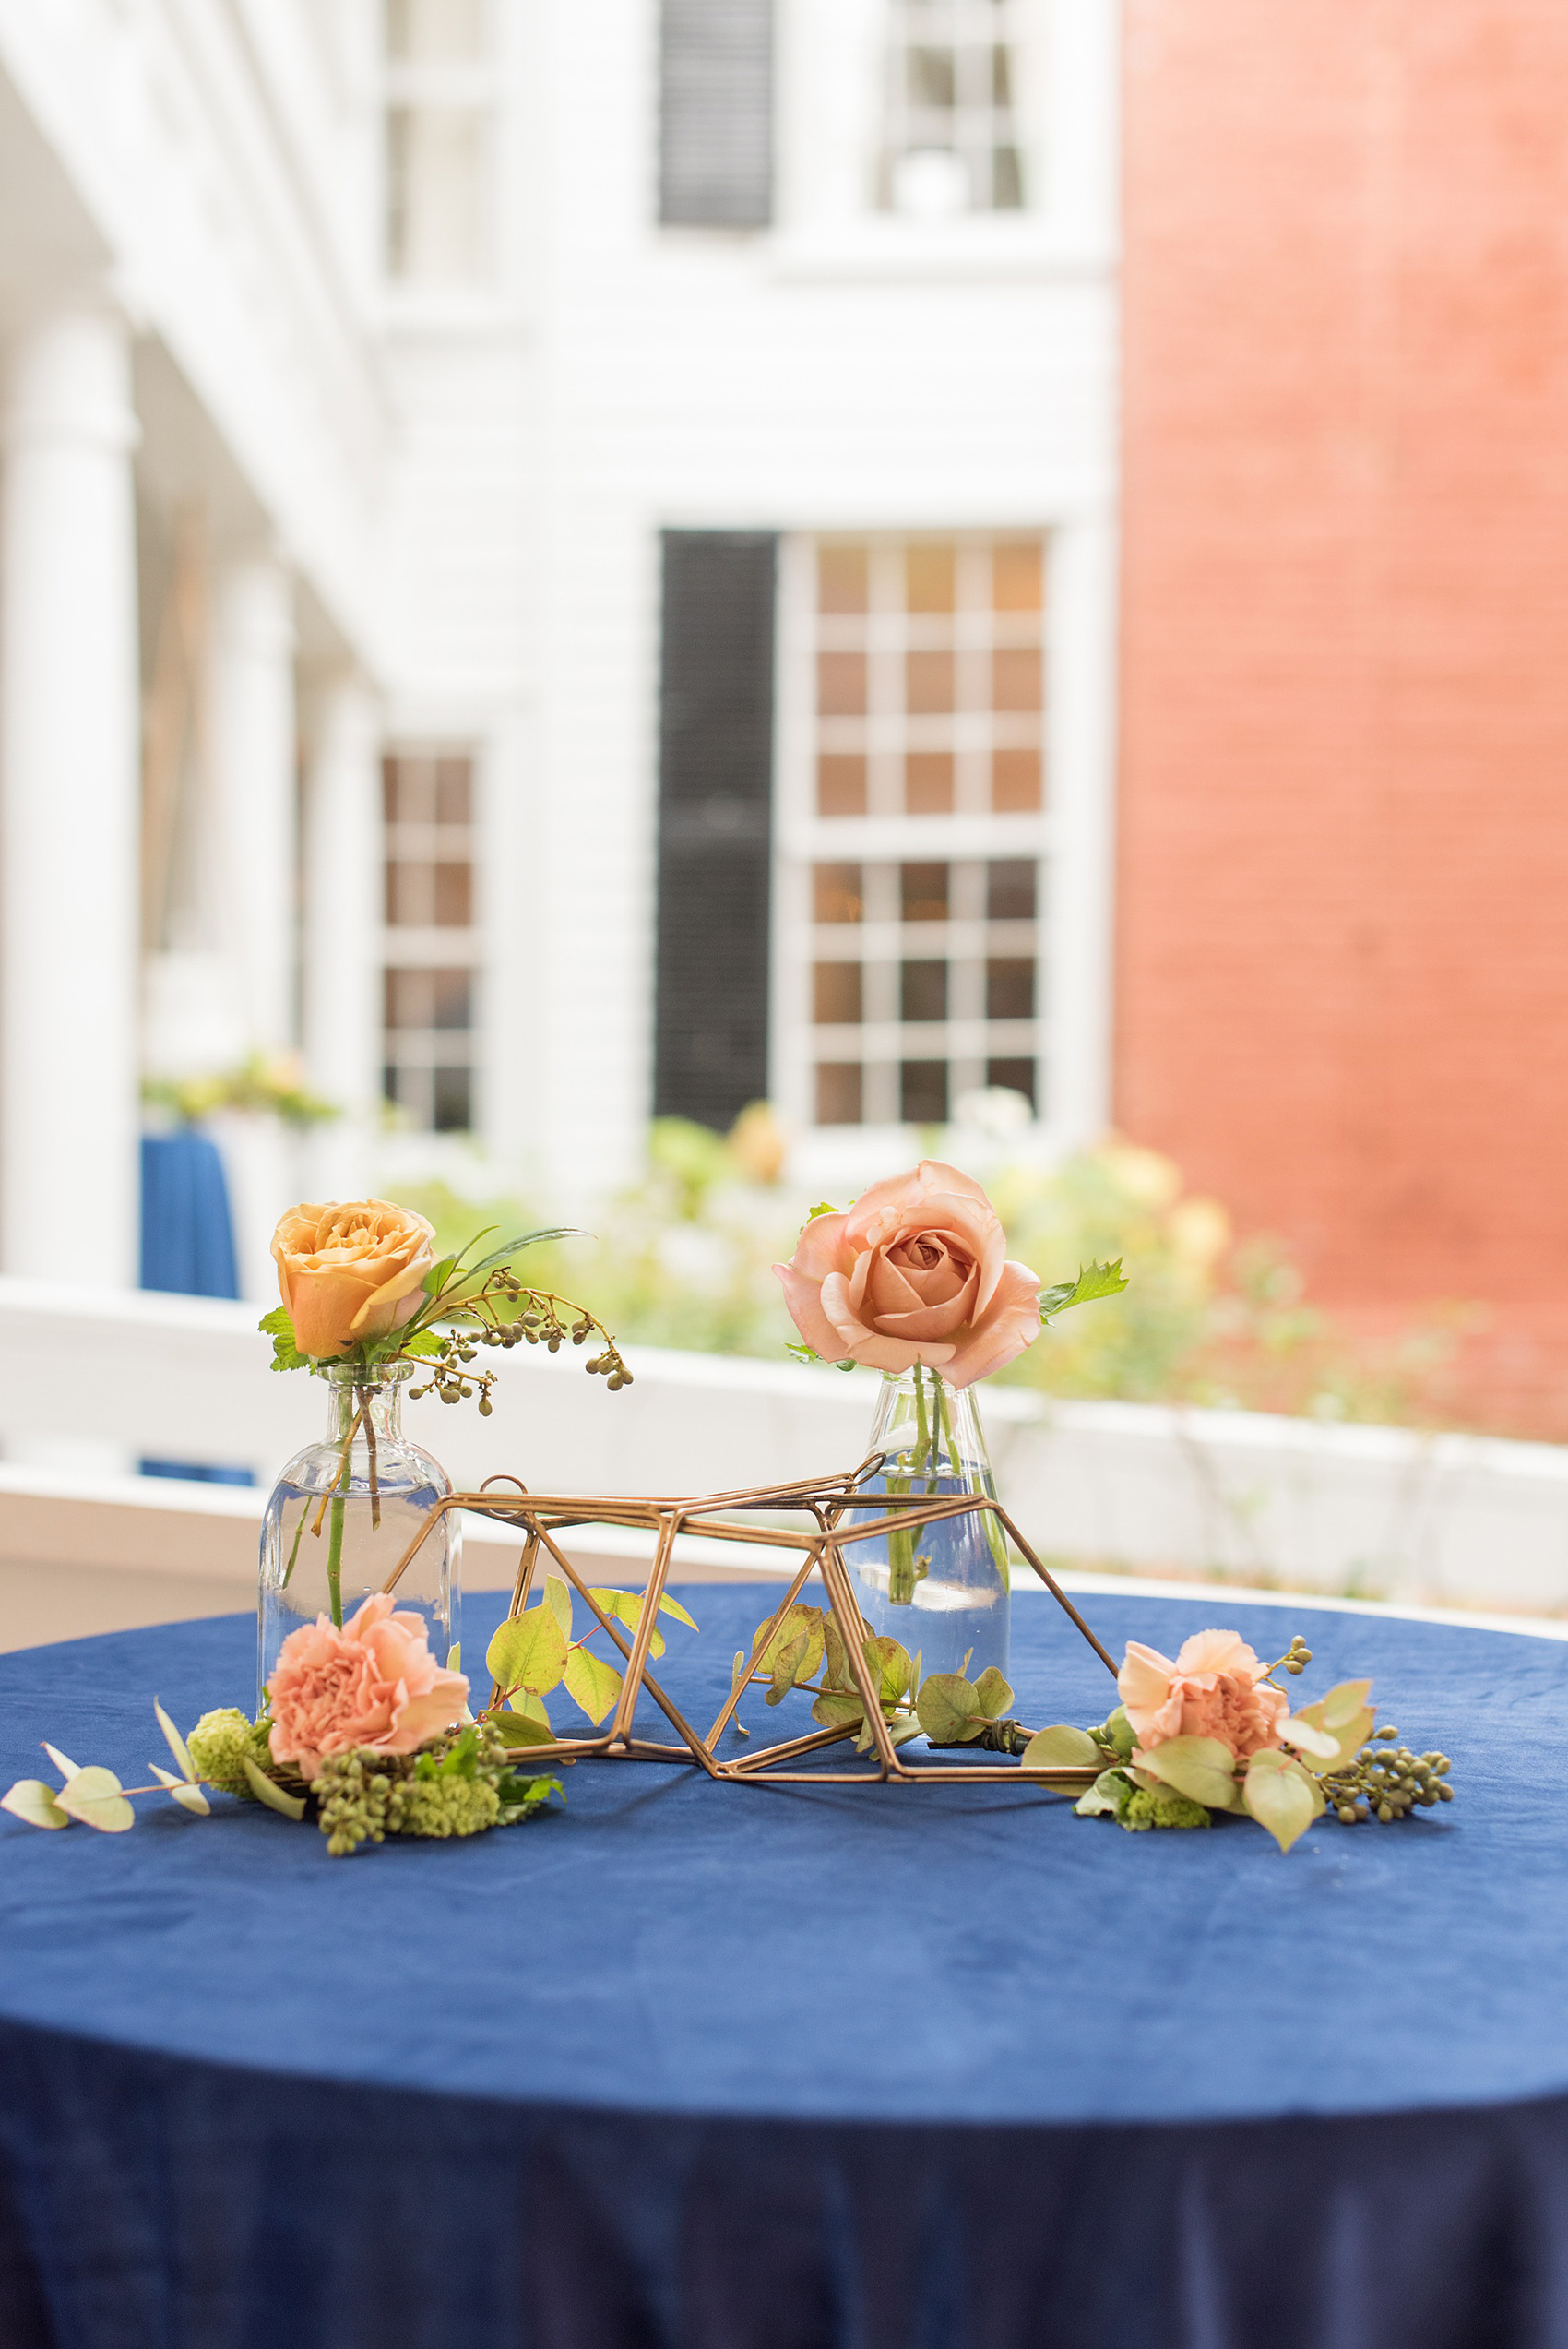 Mikkel Paige Photography photos from a wedding at Leslie-Alford Mims House in North Carolina. Picture of a blue velvet cocktail table with gold metal geometric shapes and colorful fall flowers.